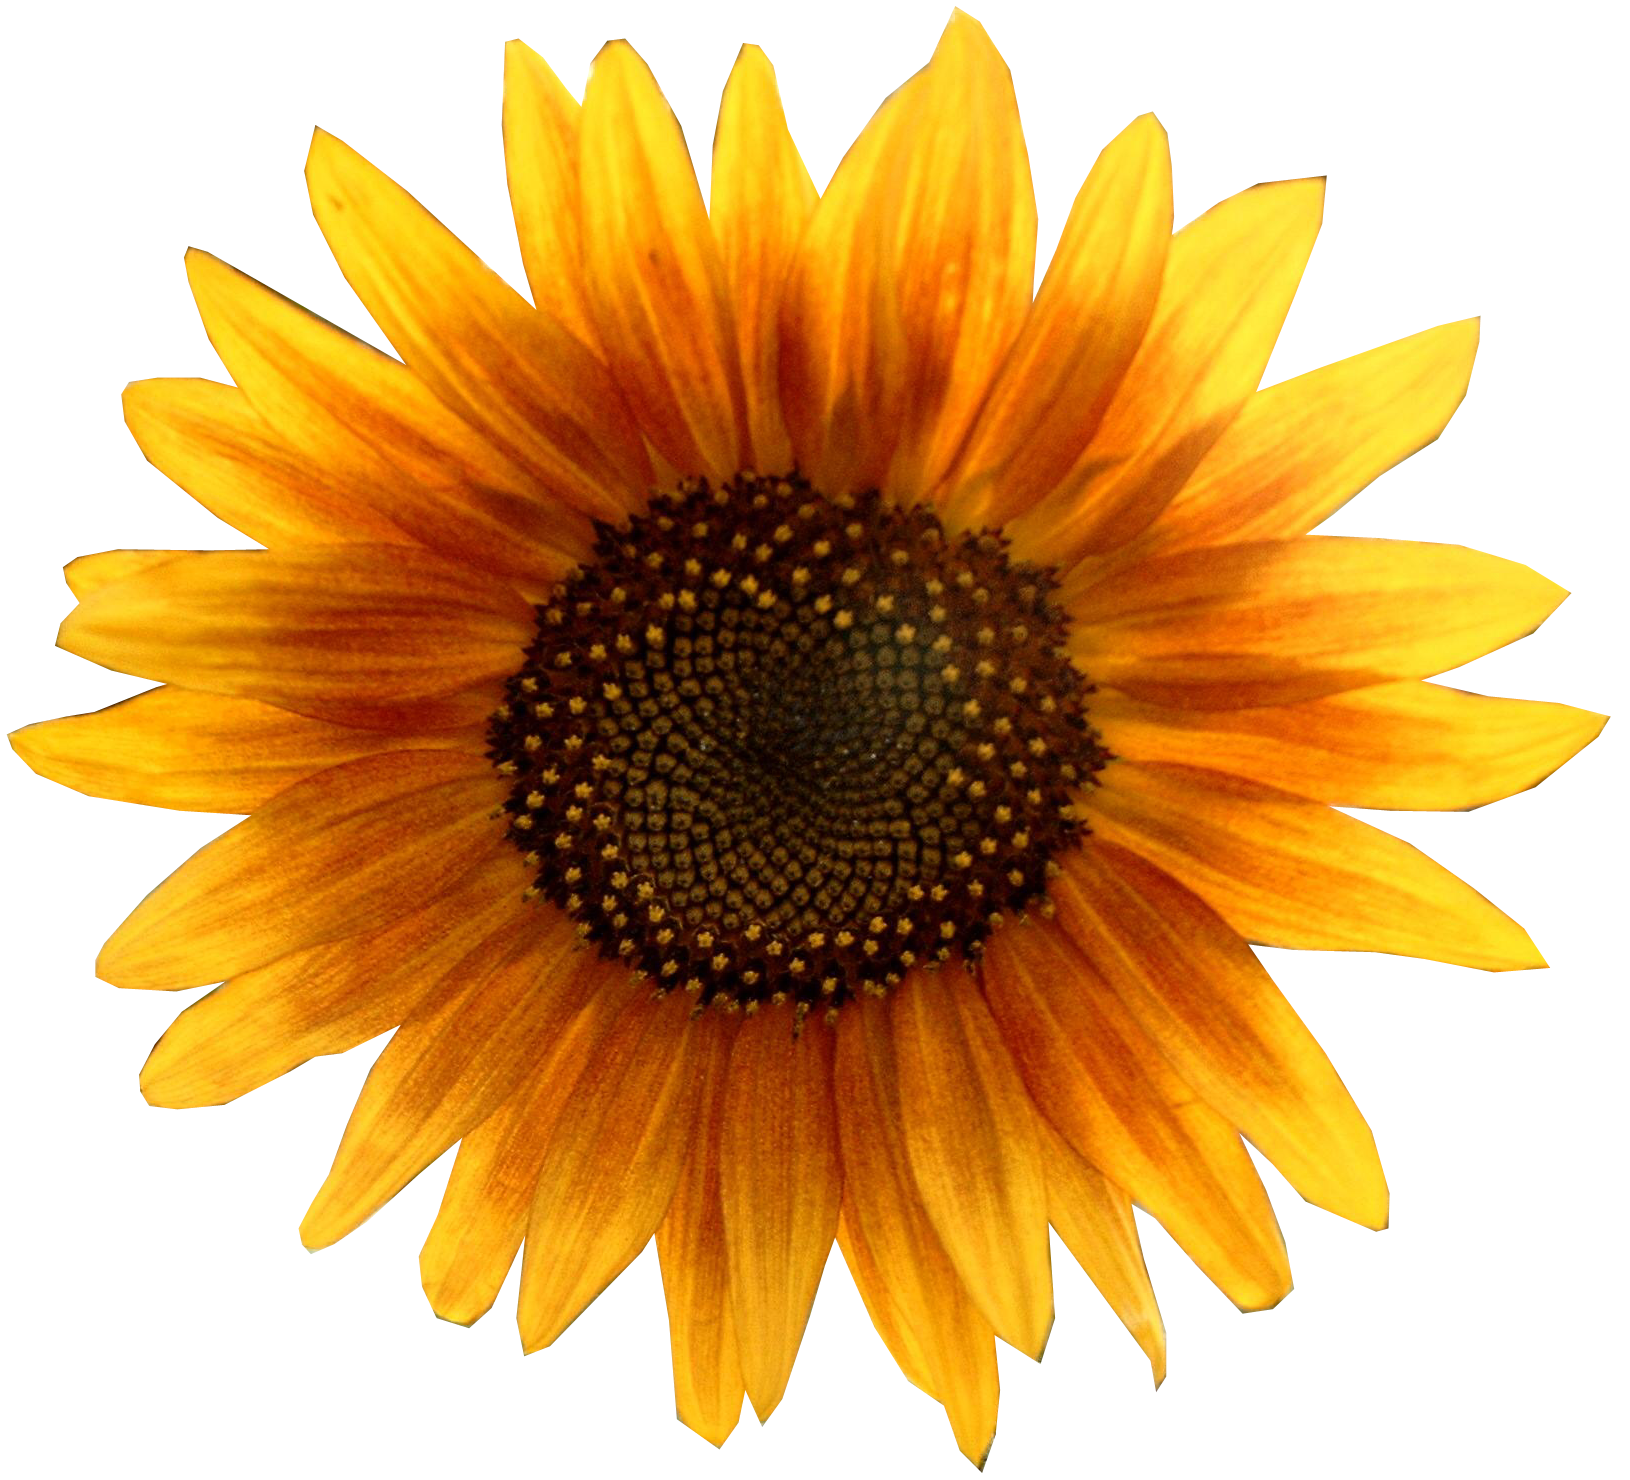 Sunflowers PNG - 6595